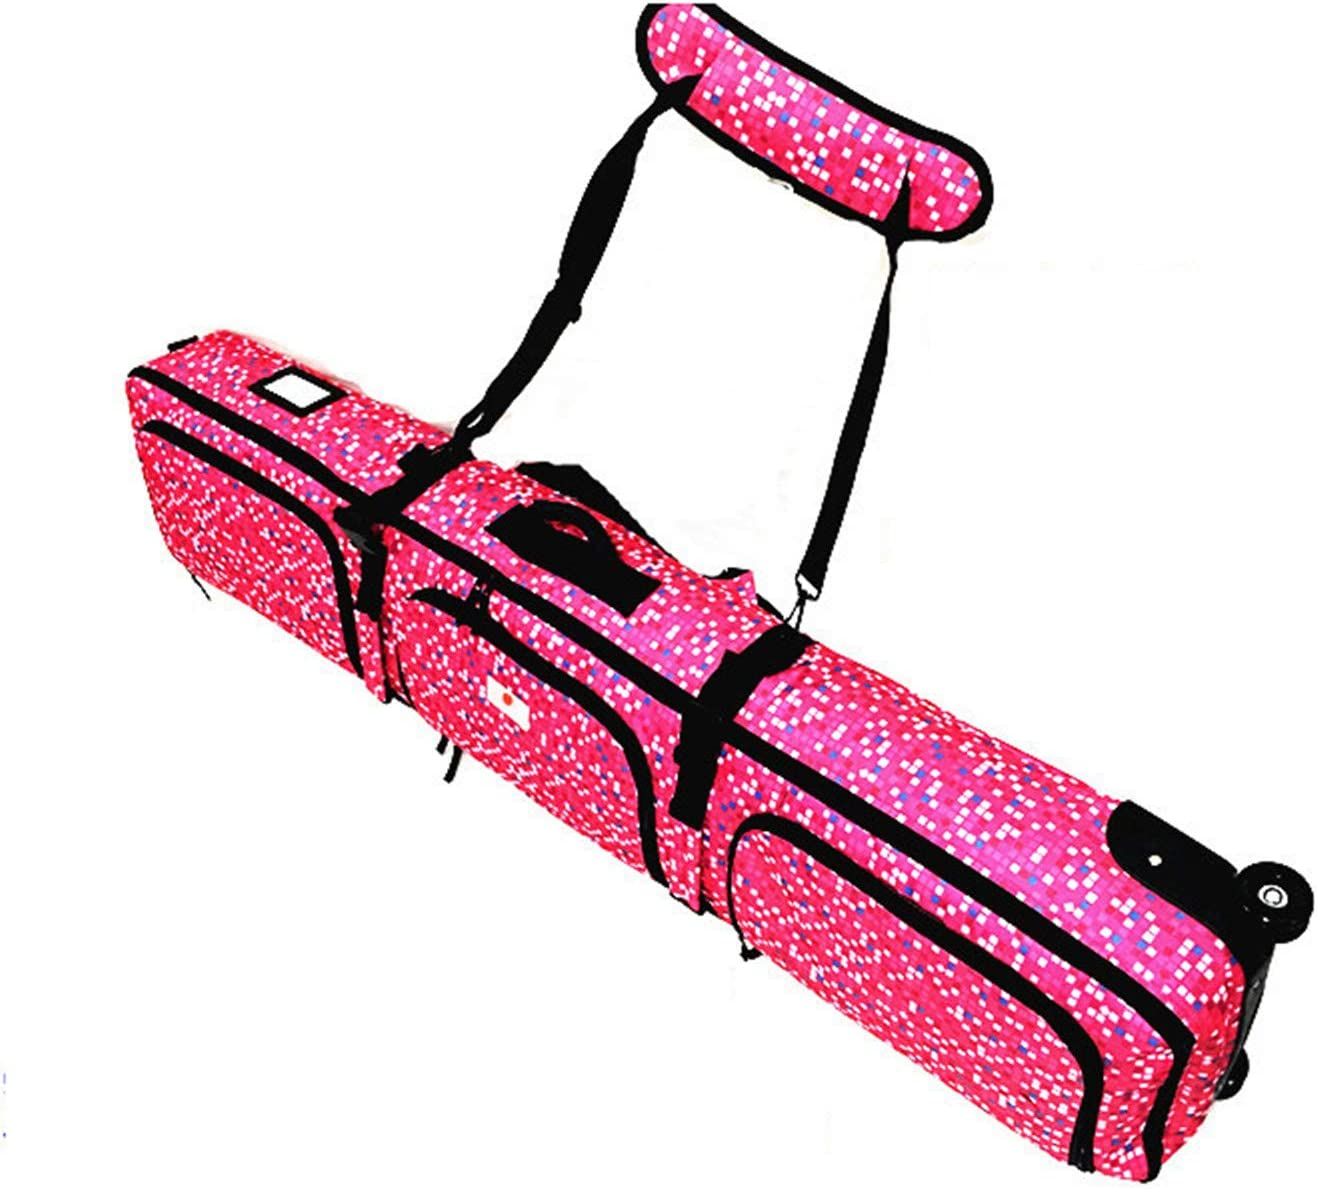 AFYH Snowboard Virginia Beach Mall Bag Rucksack L Ranking TOP13 Roller Rose-Colored